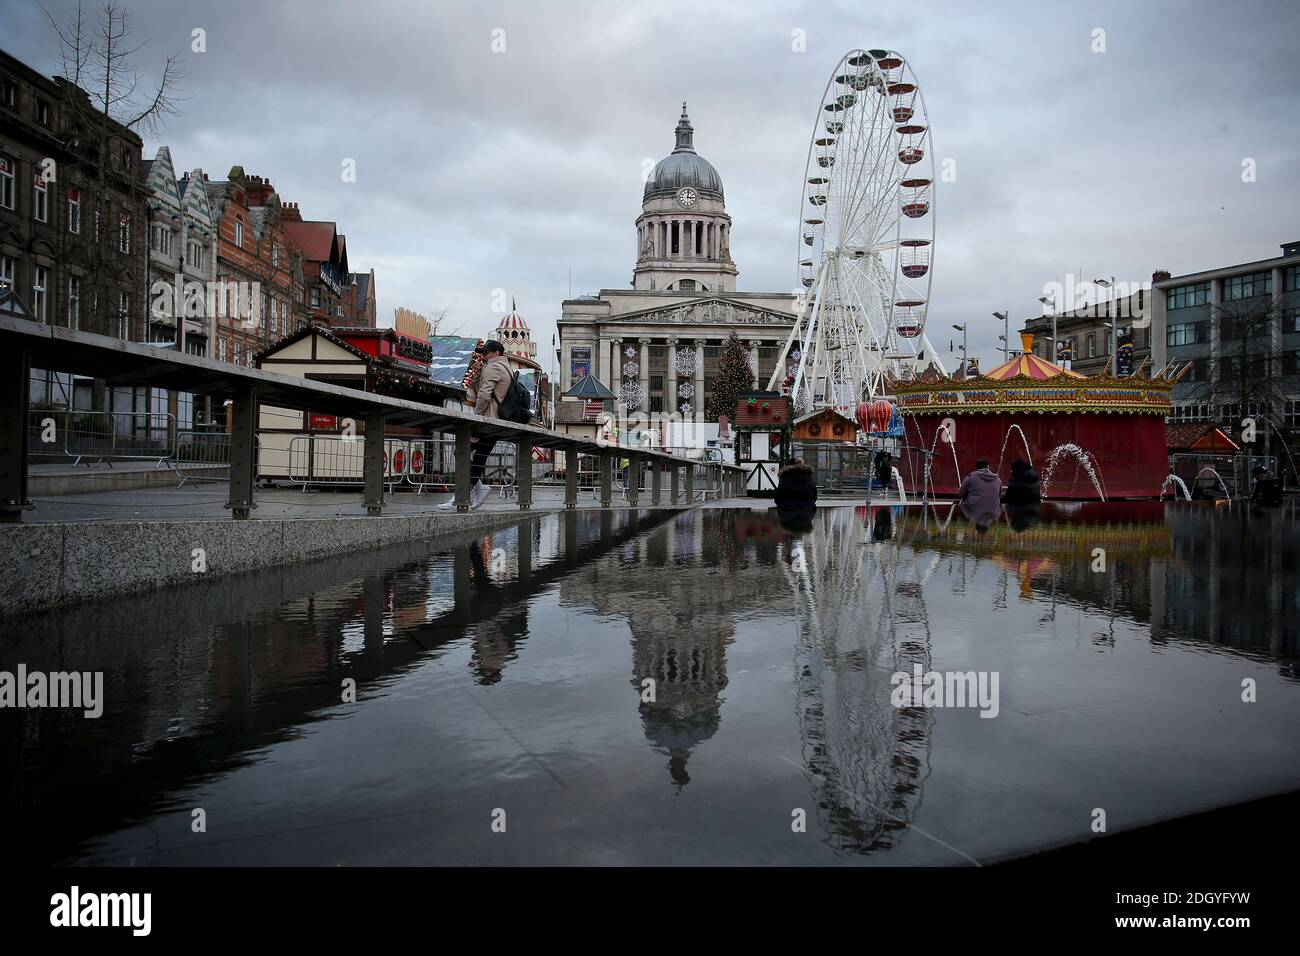 A view of the Christmas market and attractions in Old Market Square, Nottingham, Wednesday 2nd December 2020. Stock Photo